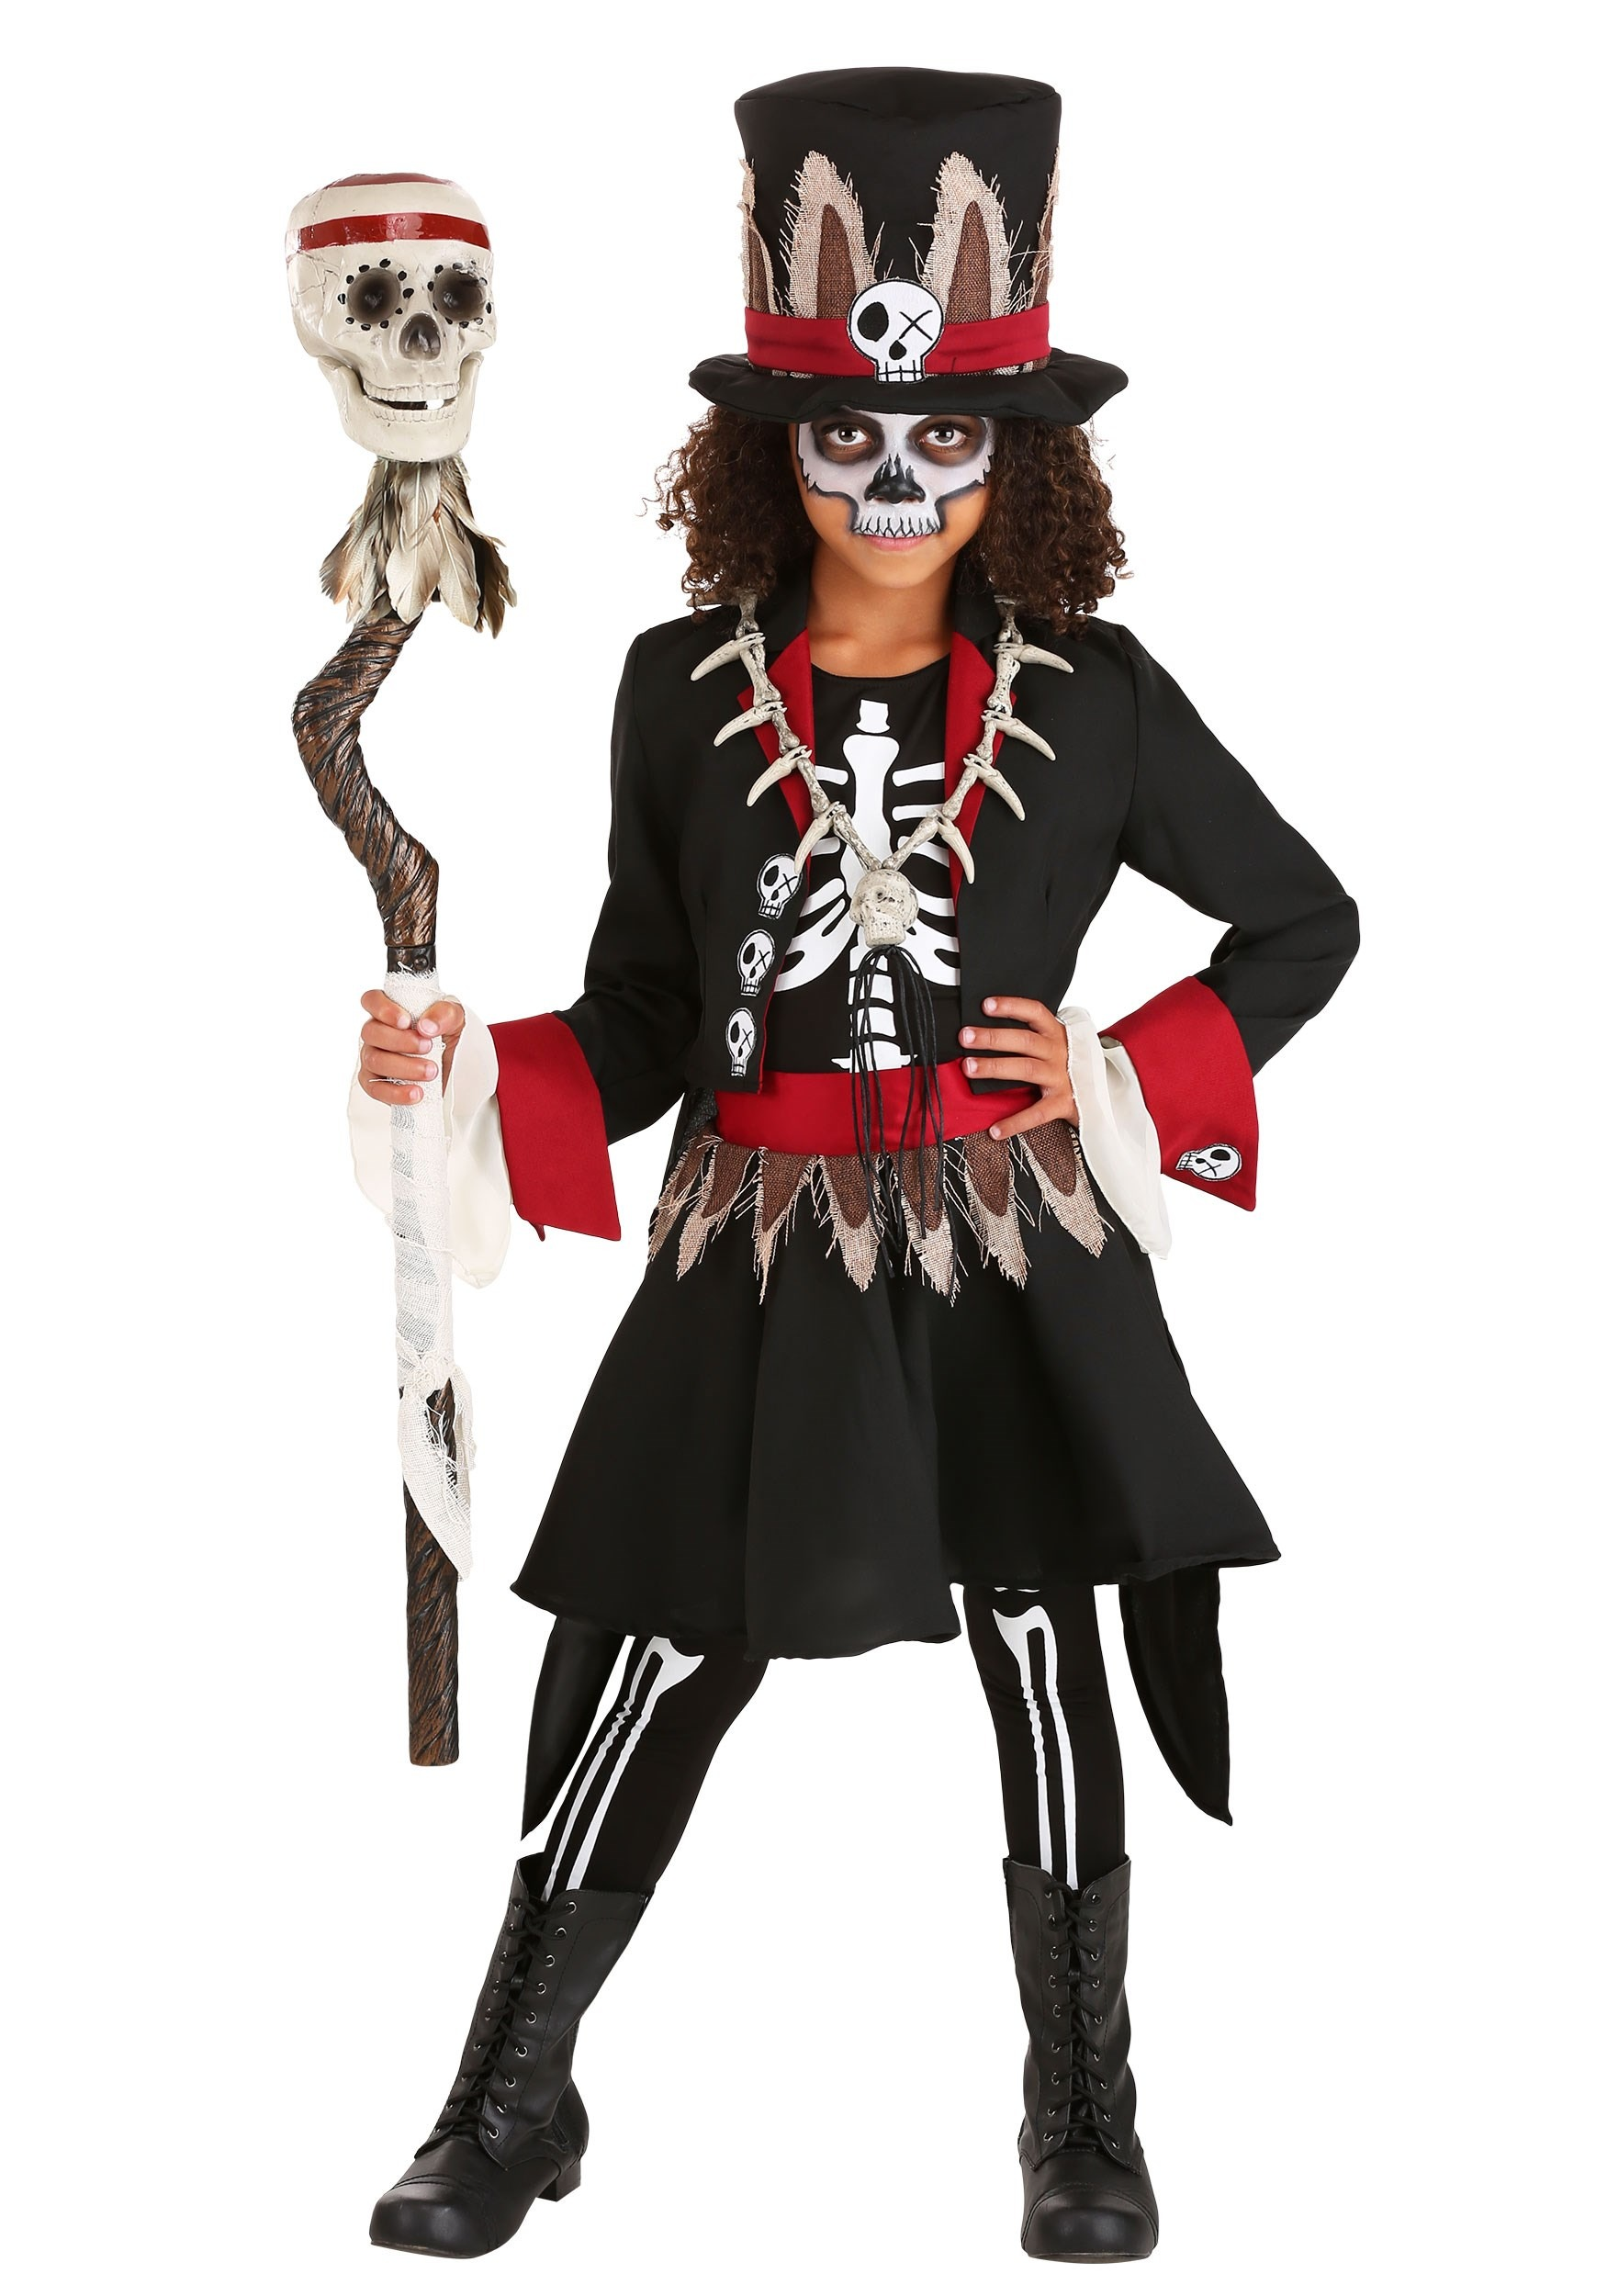 Girlu0027s Voodoo Skeleton Costume  sc 1 st  Halloween Costumes & Voodoo Skeleton Girlu0027s Costume